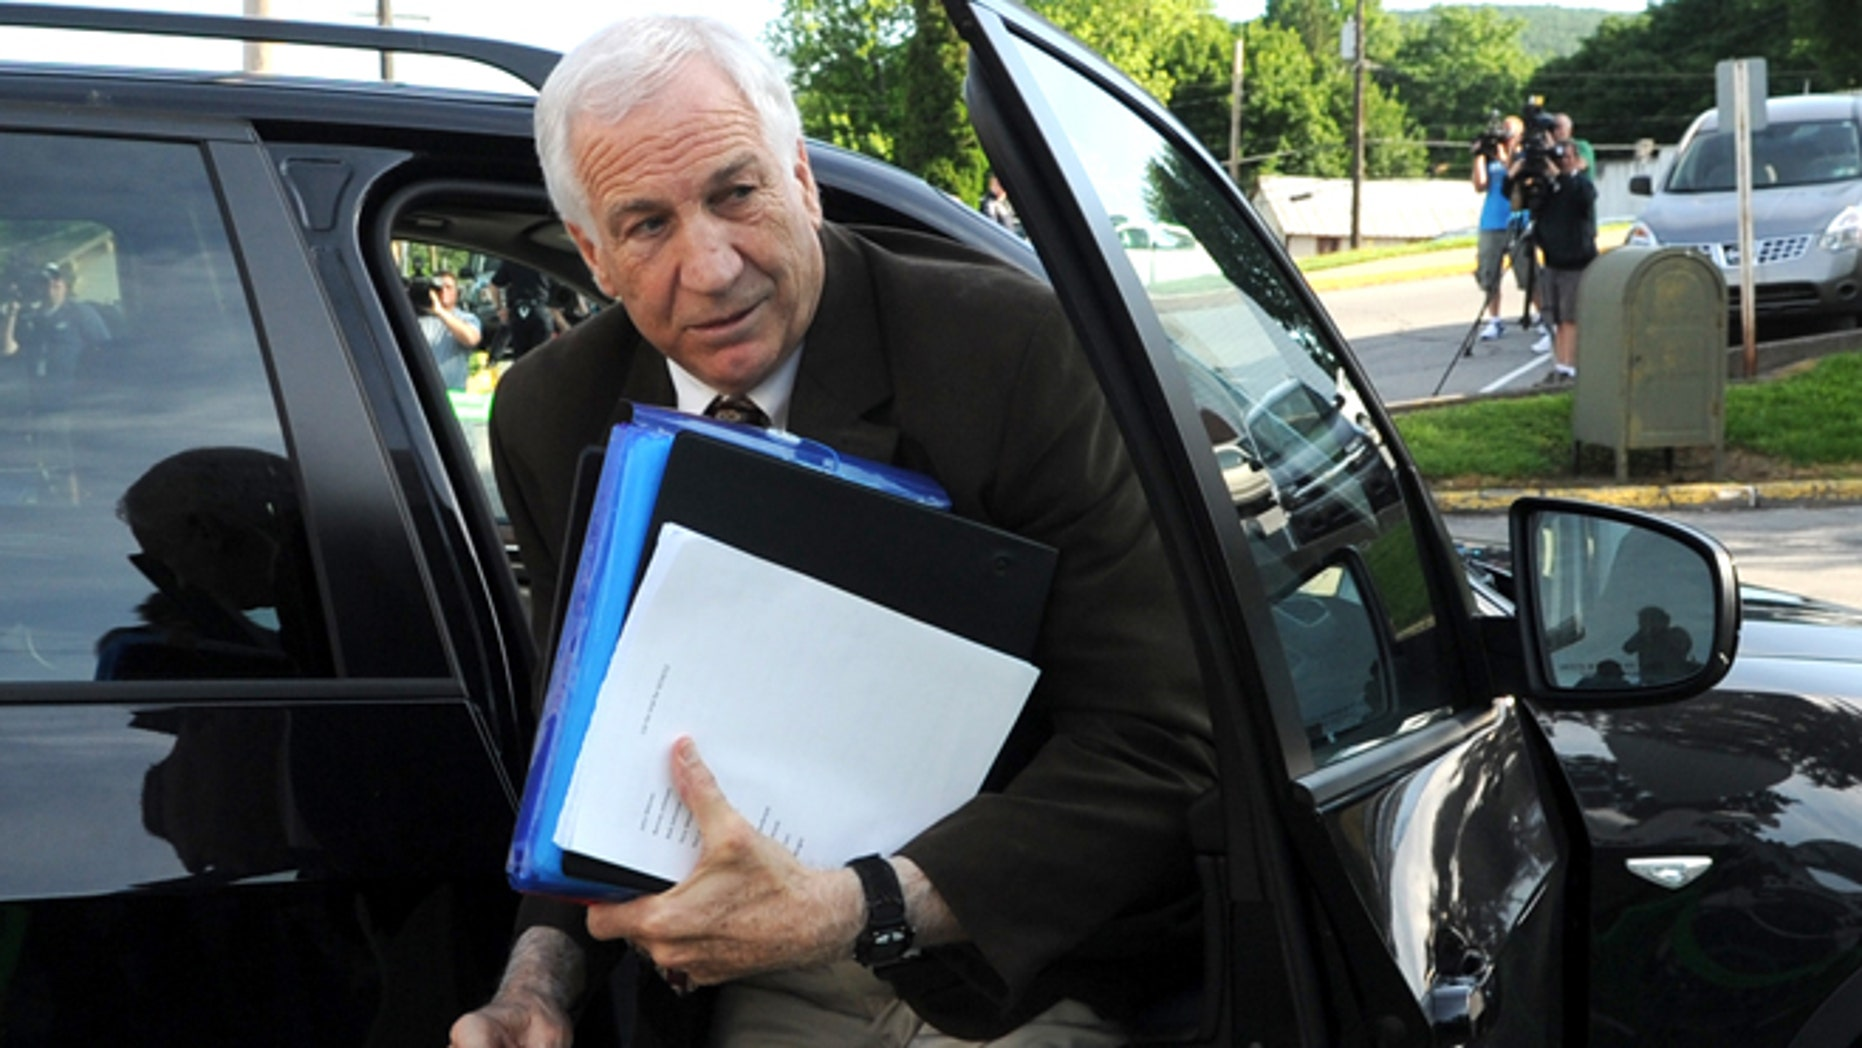 June 14: Former Penn State University assistant football coach Jerry Sandusky arrives for the fourth day of his trial at the Centre County Courthouse in Bellefonte, Pa.